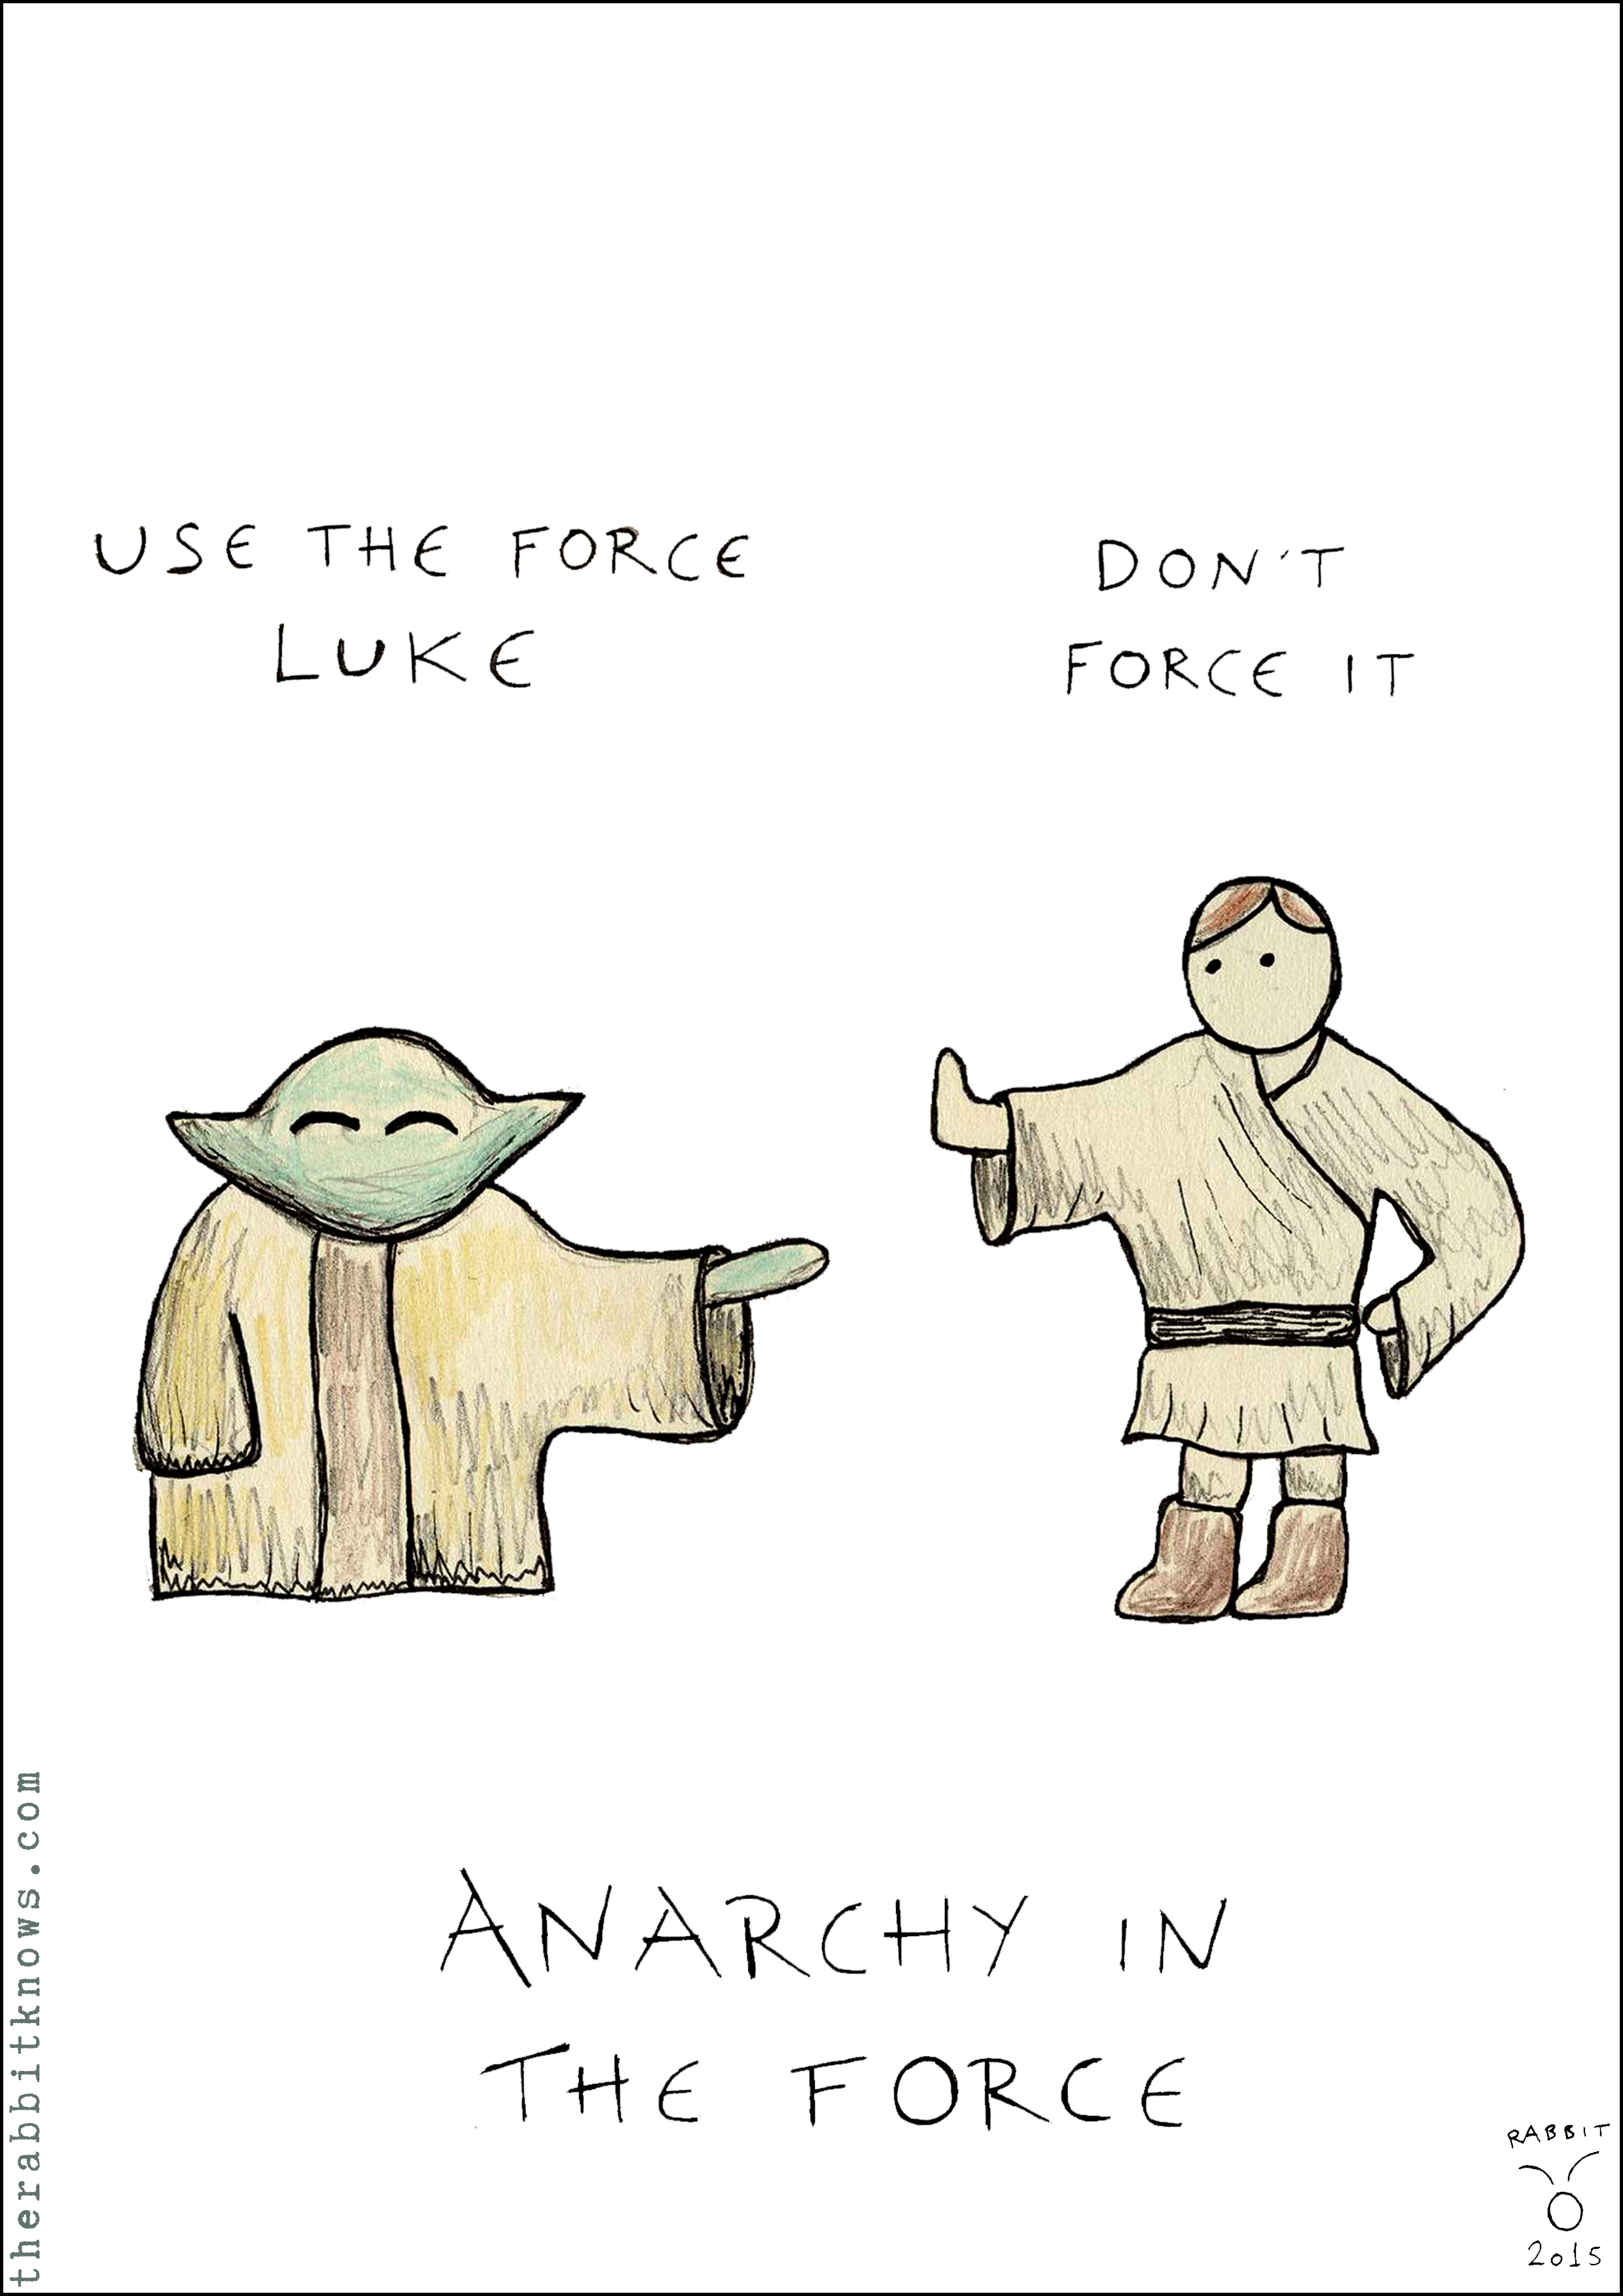 Anarchy in the force.jpg